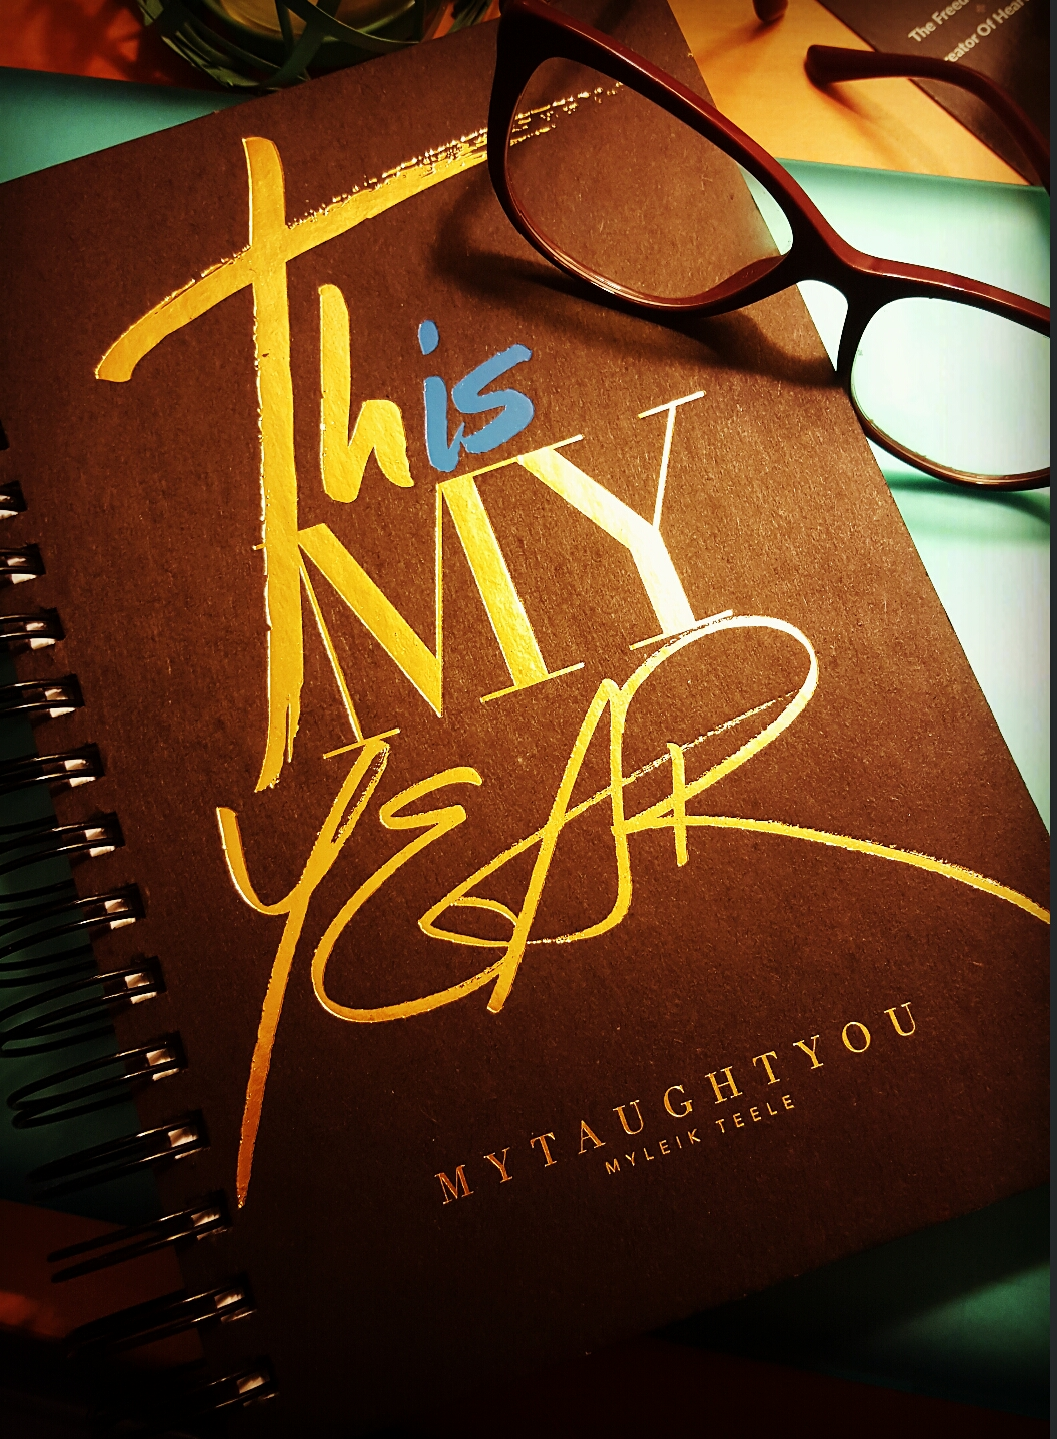 how to write stronger myleik